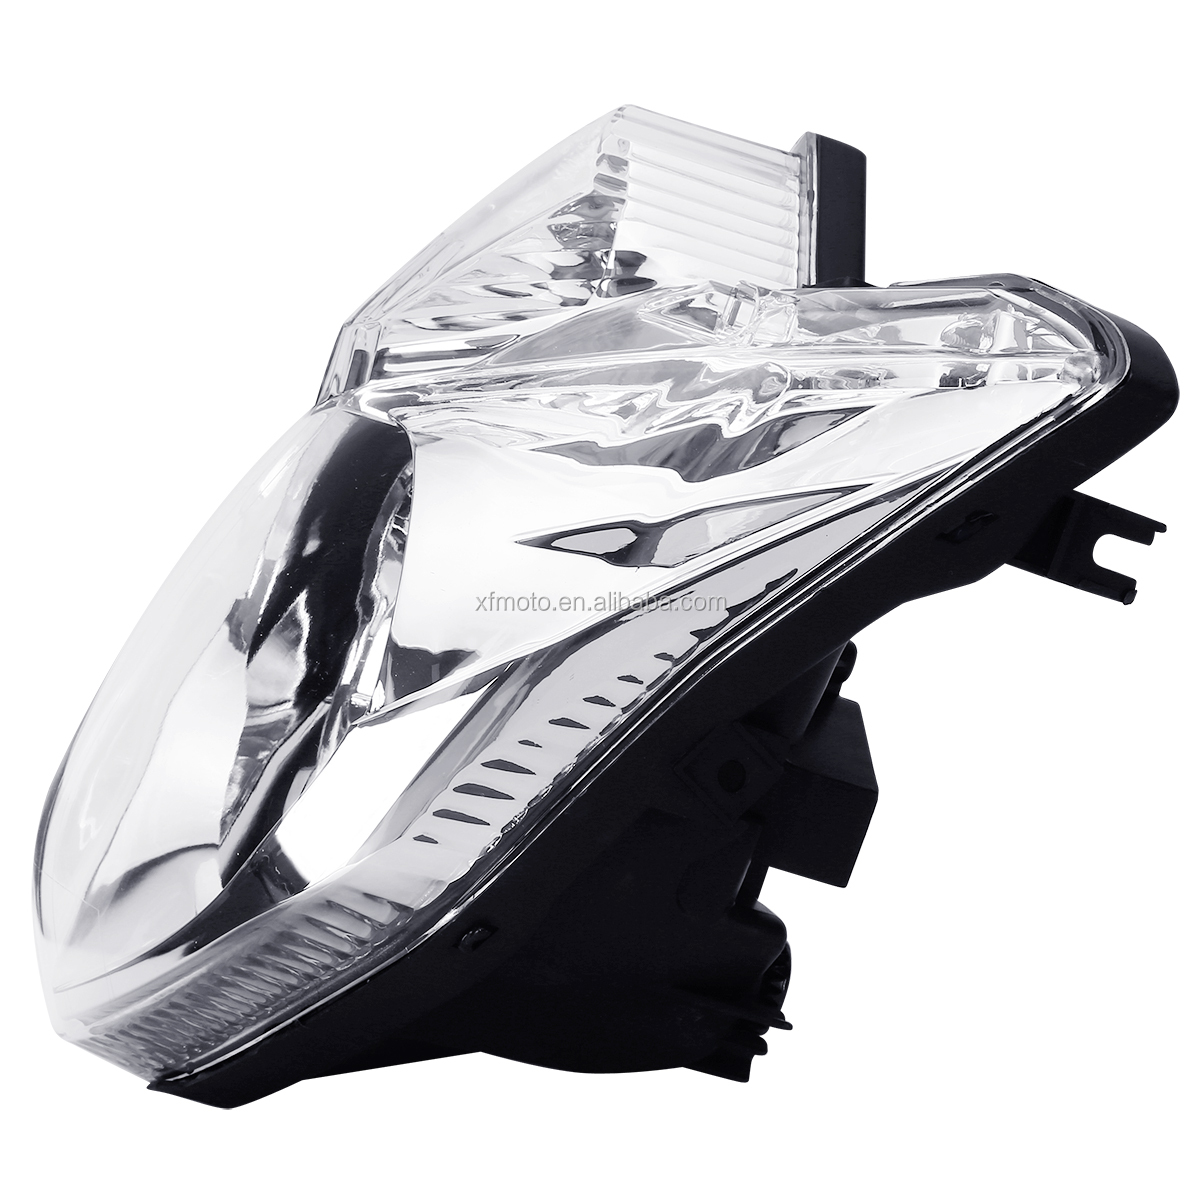 TCMT Manufacturer XF140188 Motorcycle Parts Front Headlight Clear Lens Headlamp Assembly For Yamaha FZ8-N FZ8 2010-2013